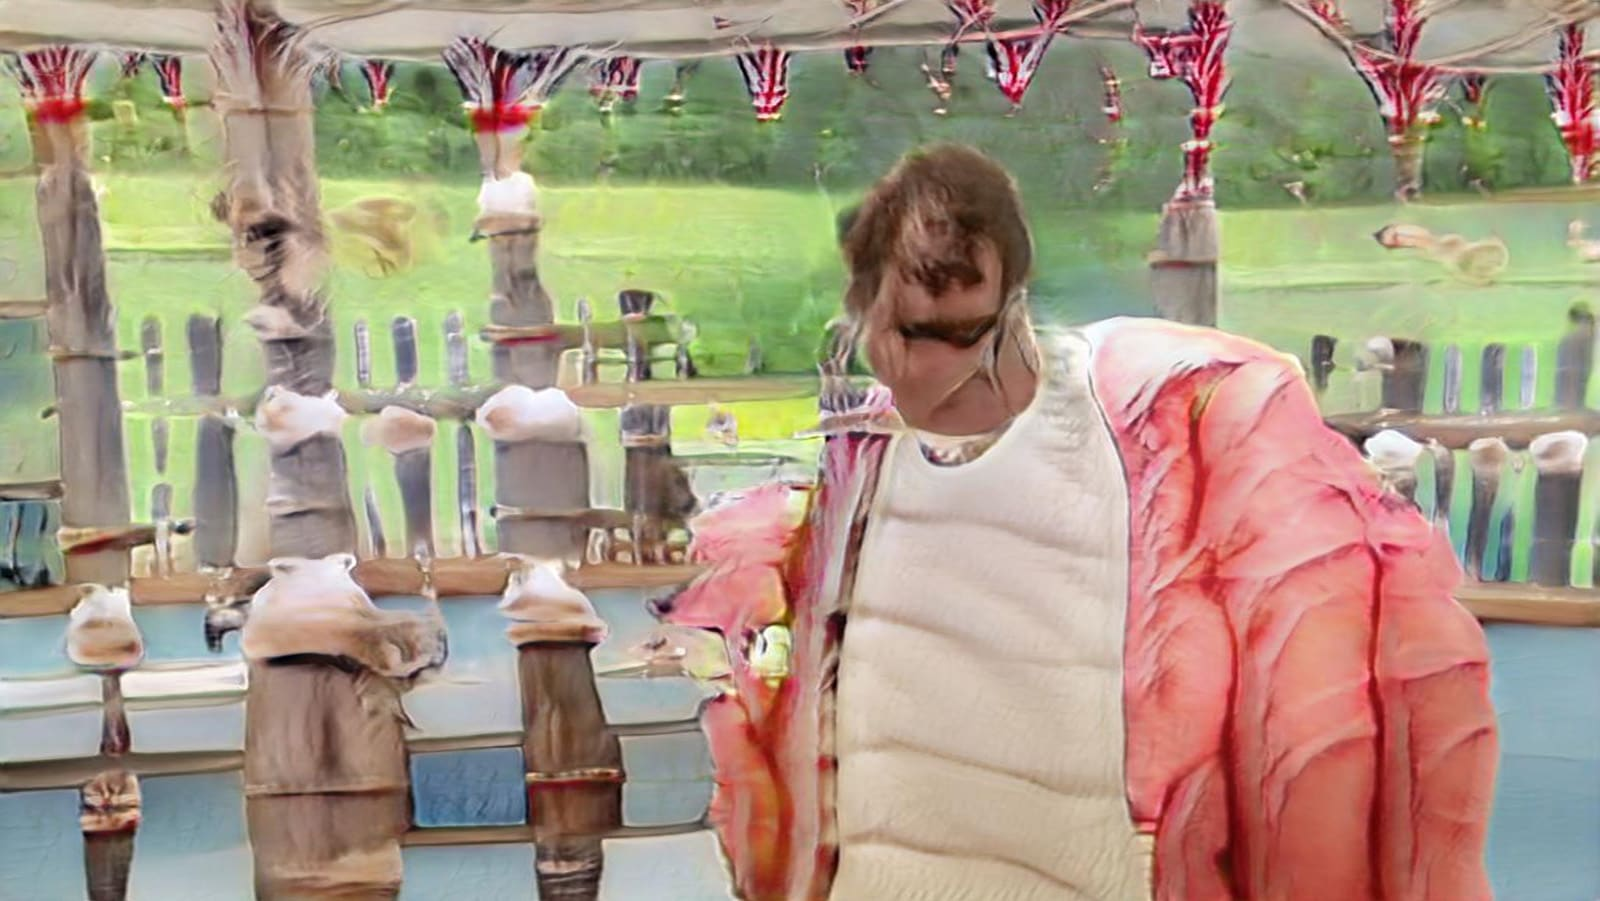 AI transforms 'The Great British Bakeoff' into a horror show